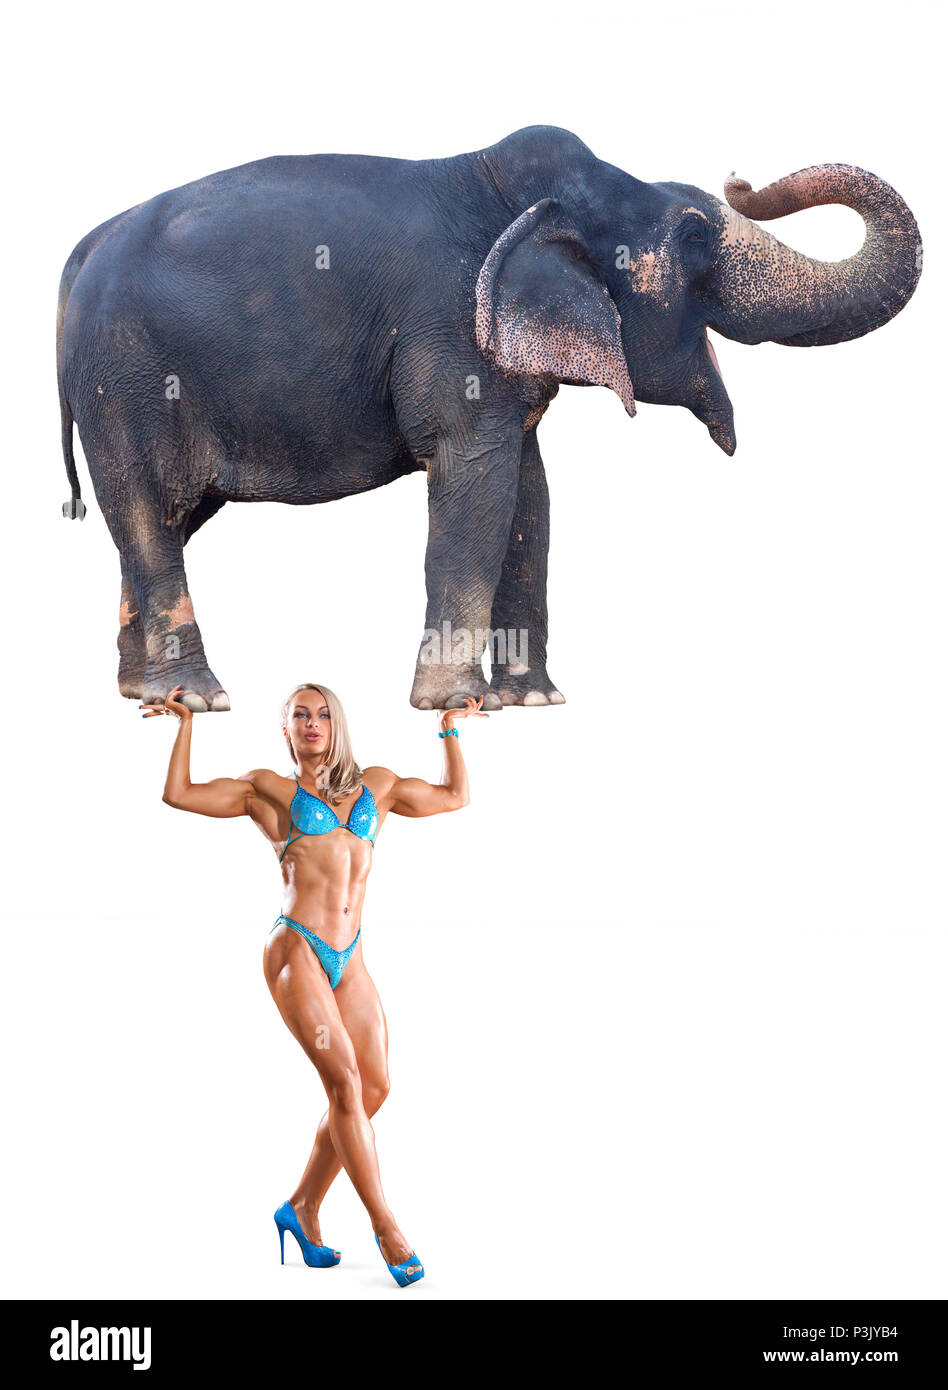 Abstract concept photo of mighty woman holding elephant on her hands isolated over white background - Stock Image